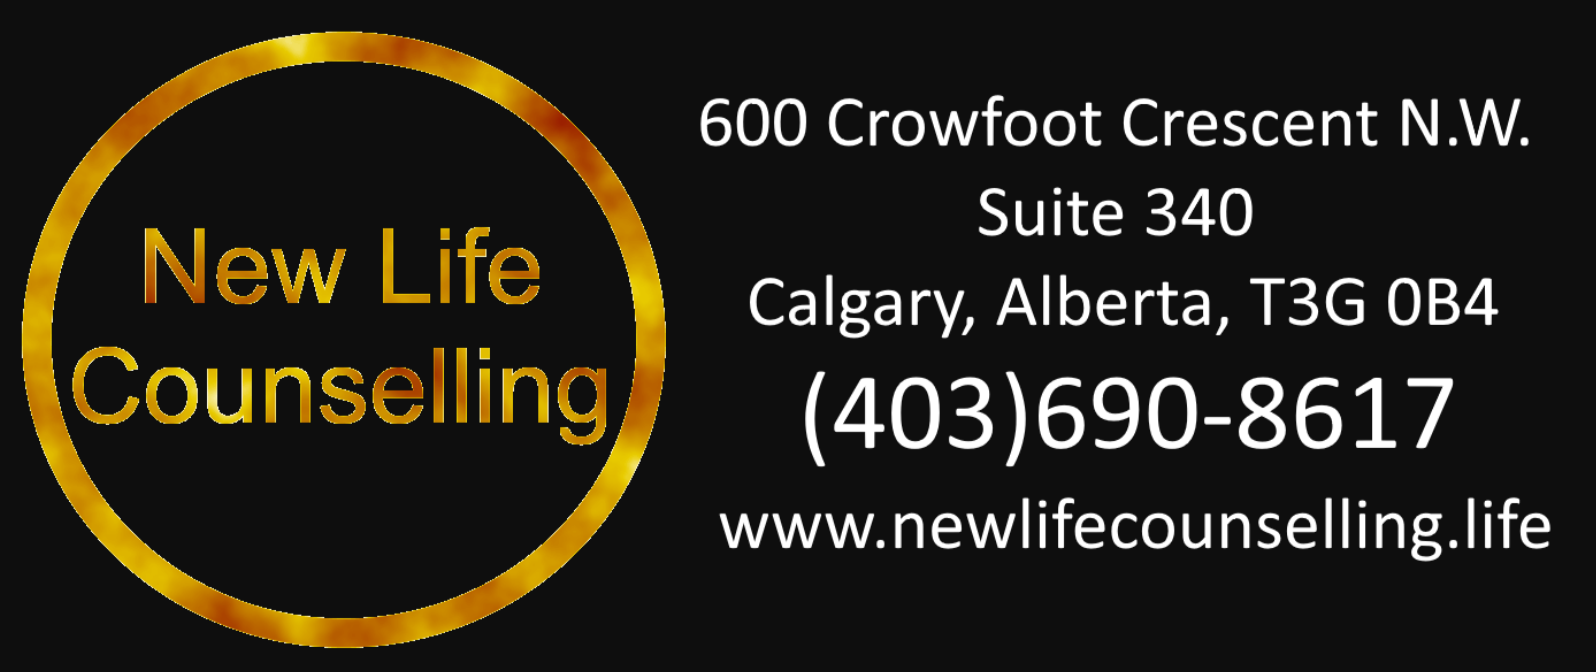 Friendly Handoff of Practice in Counselling Calgary NW